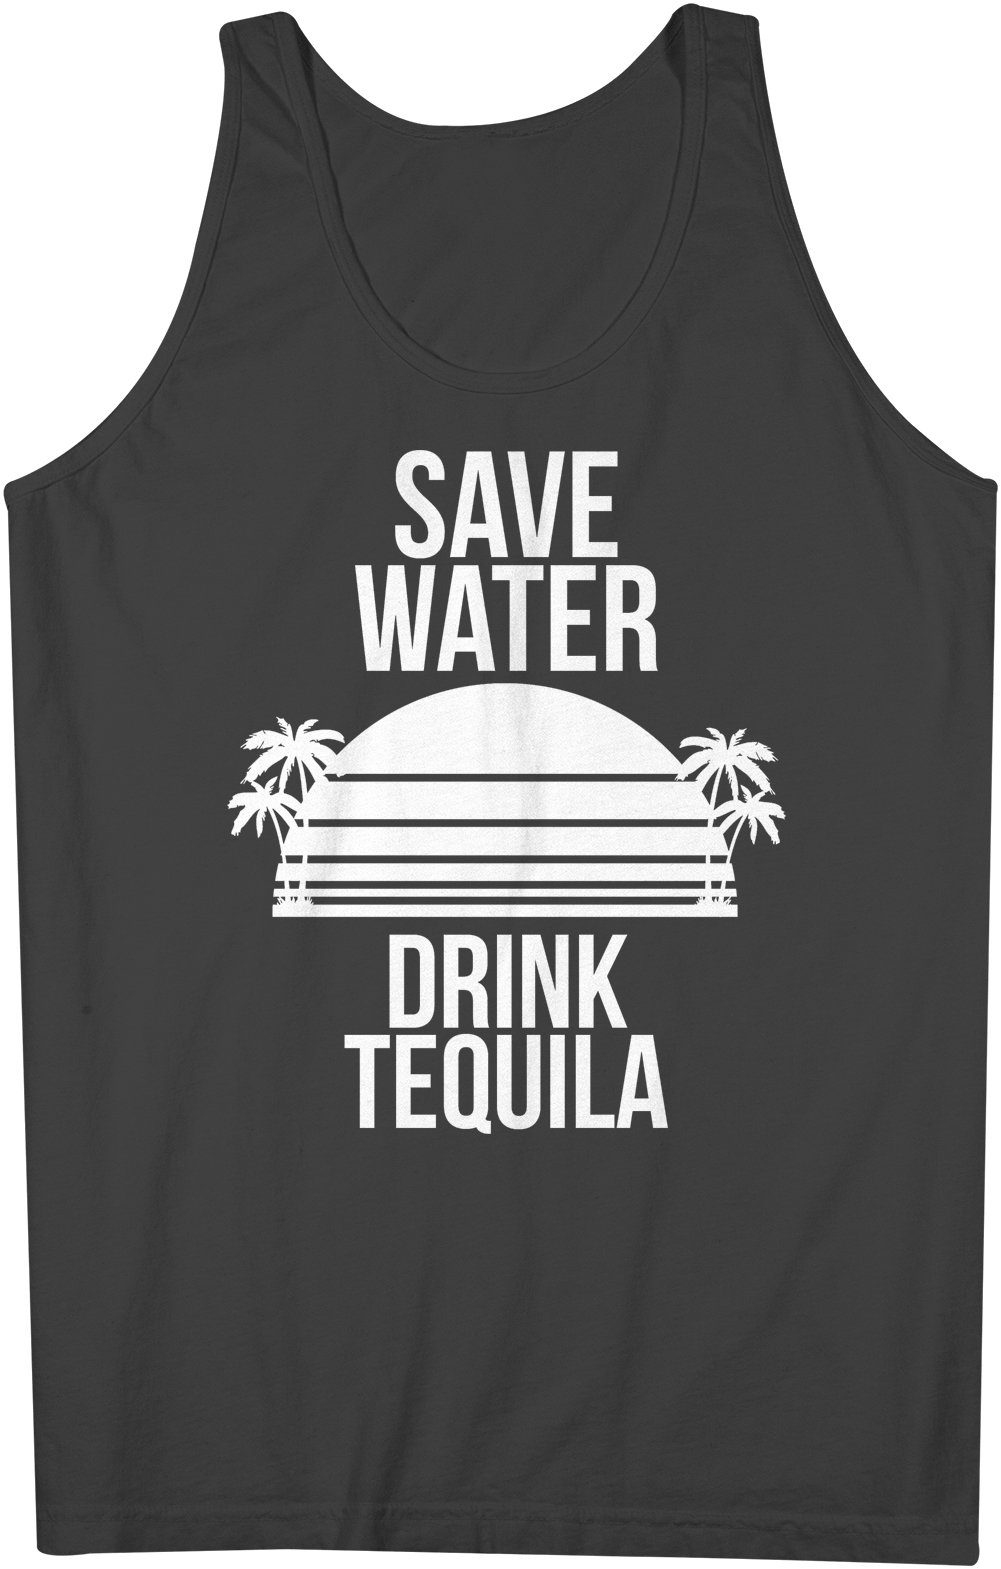 Save Water Drink Tequila Funny Party Cool Tank Top Sleeveless Shirt X 4888